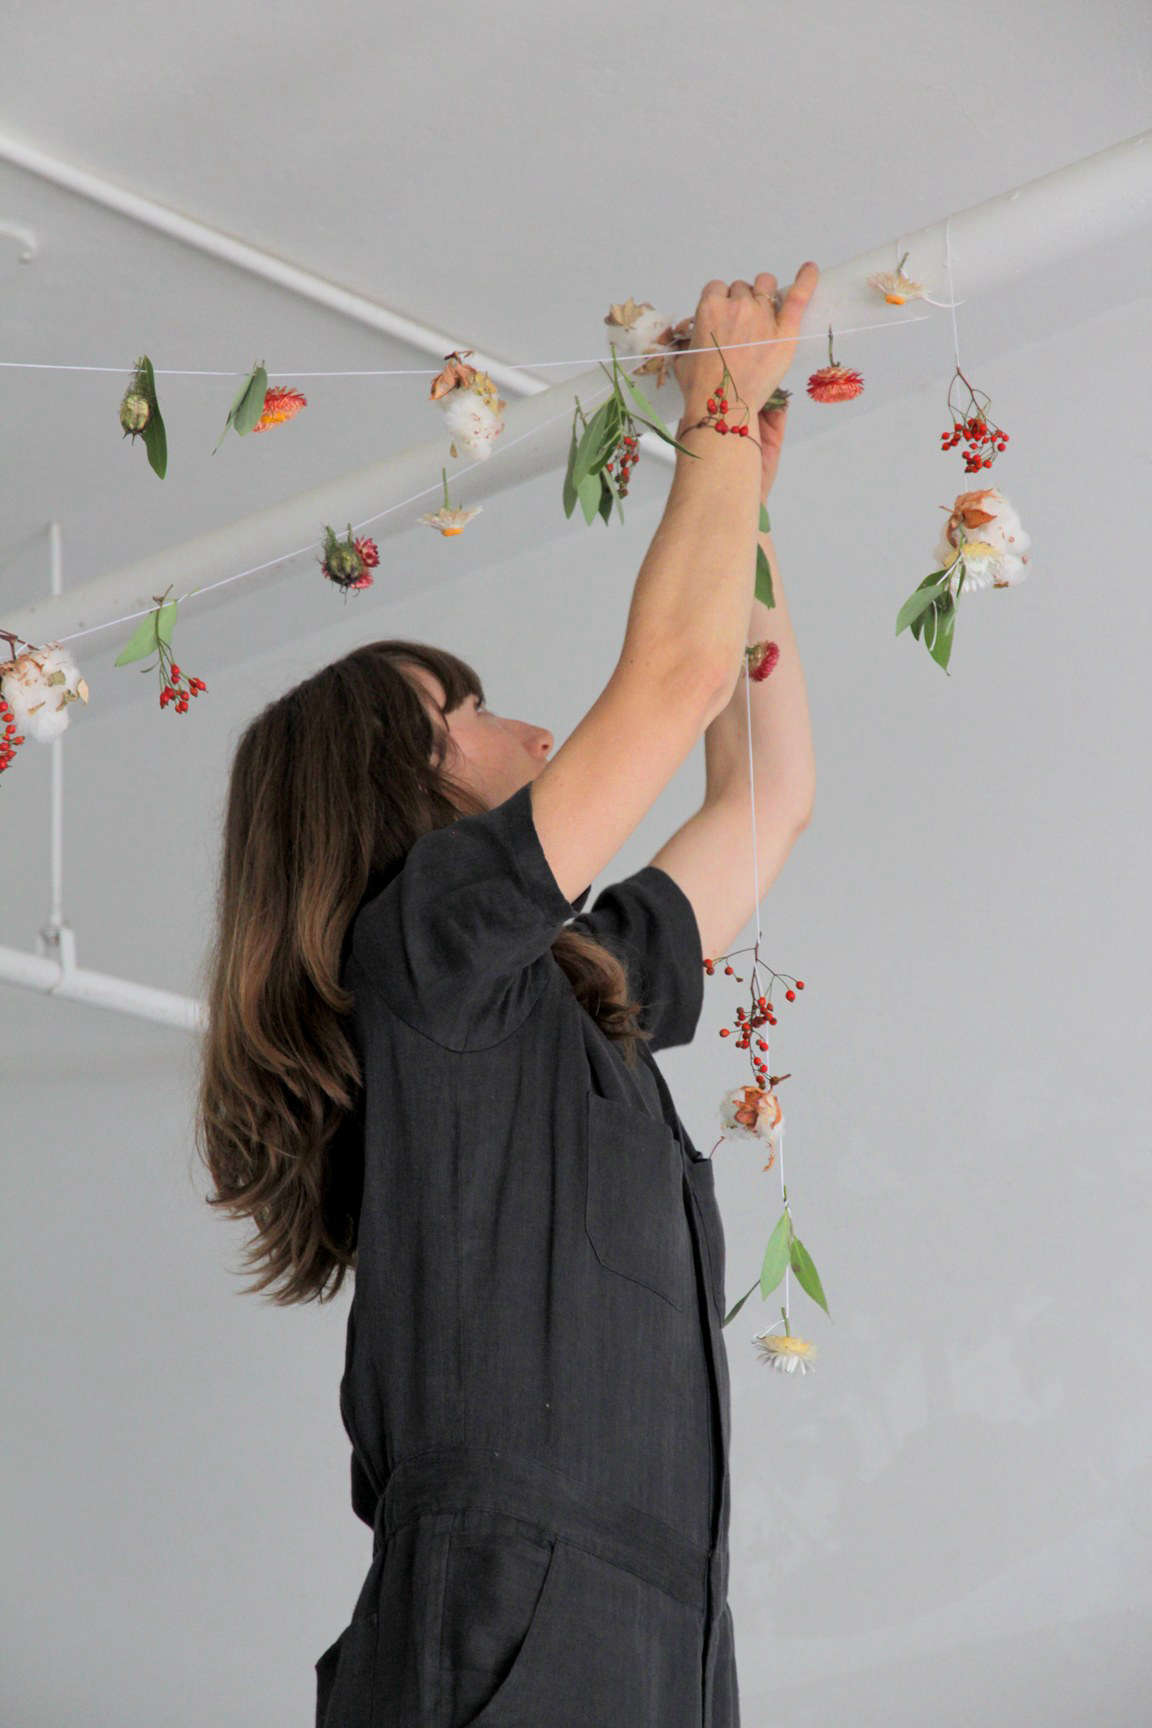 Horvath wraps the garland around exposed pipes in the restaurant.